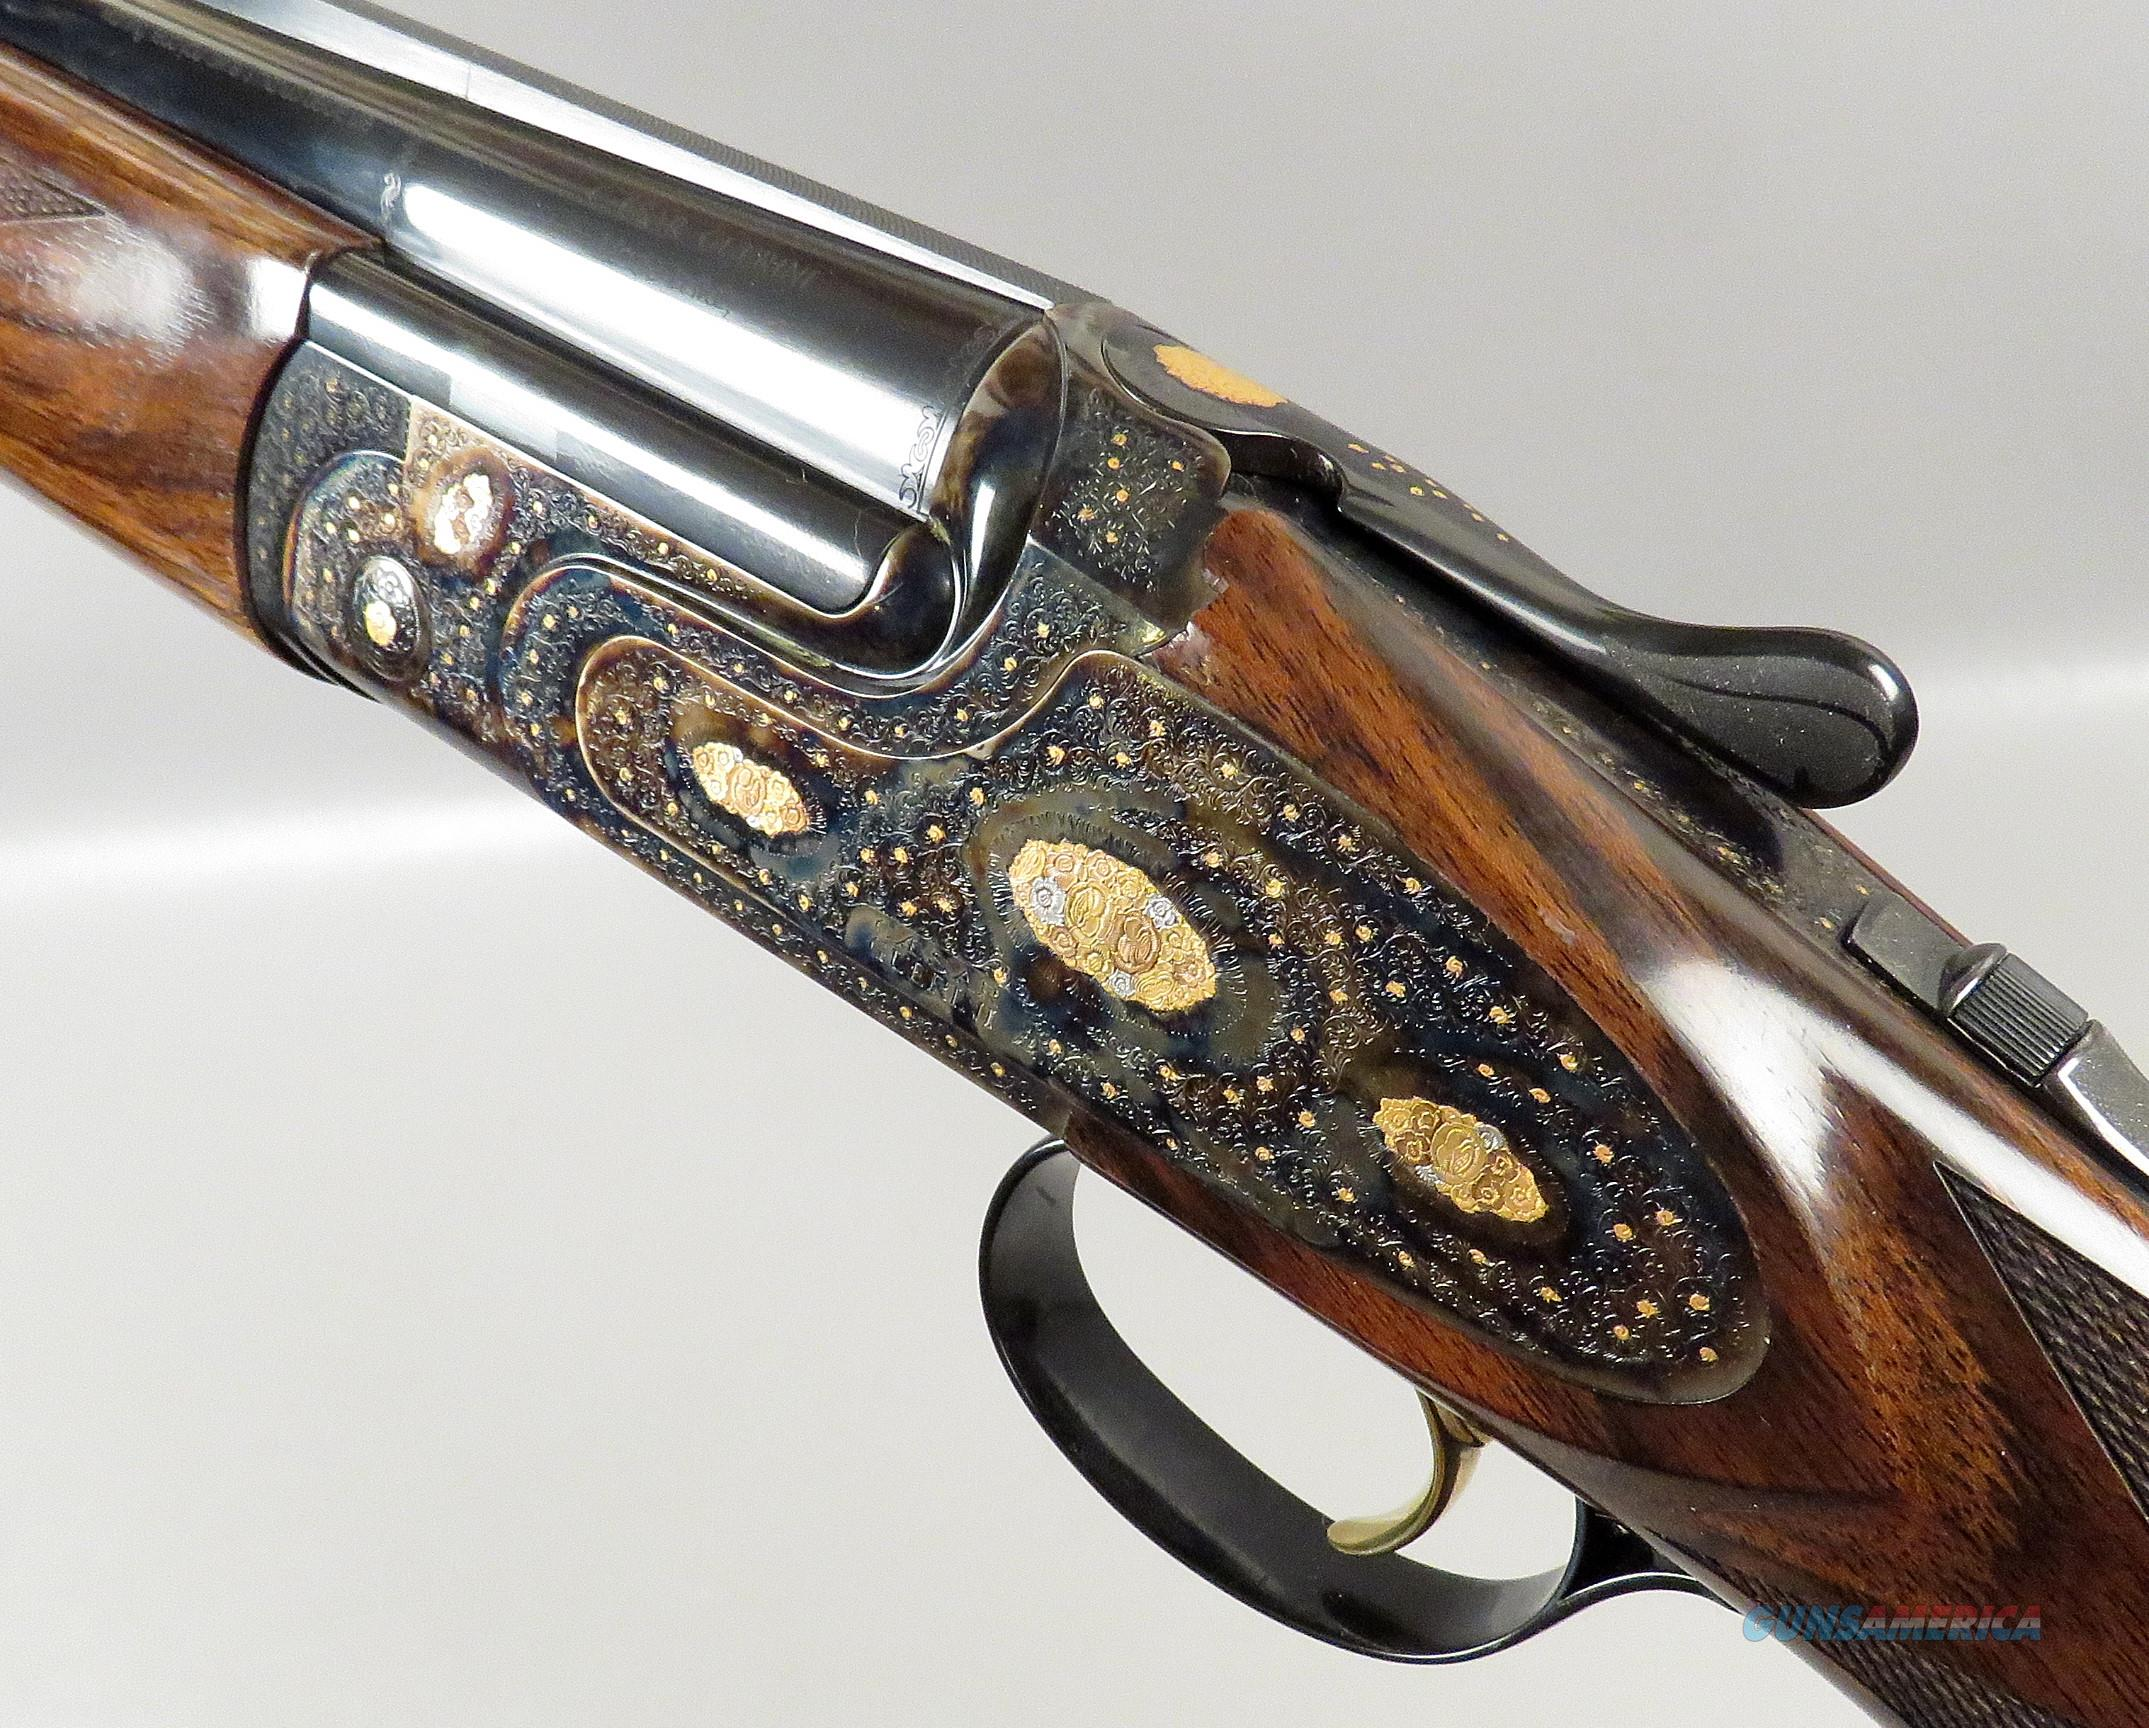 CAESAR GUERINI ESSEX LIMITED GOLD Shotgun 20 28 Ga ELITE EDITION Combo 28 Inch BBLS UNFIRED  Guns > Shotguns > Guerini Shotuns